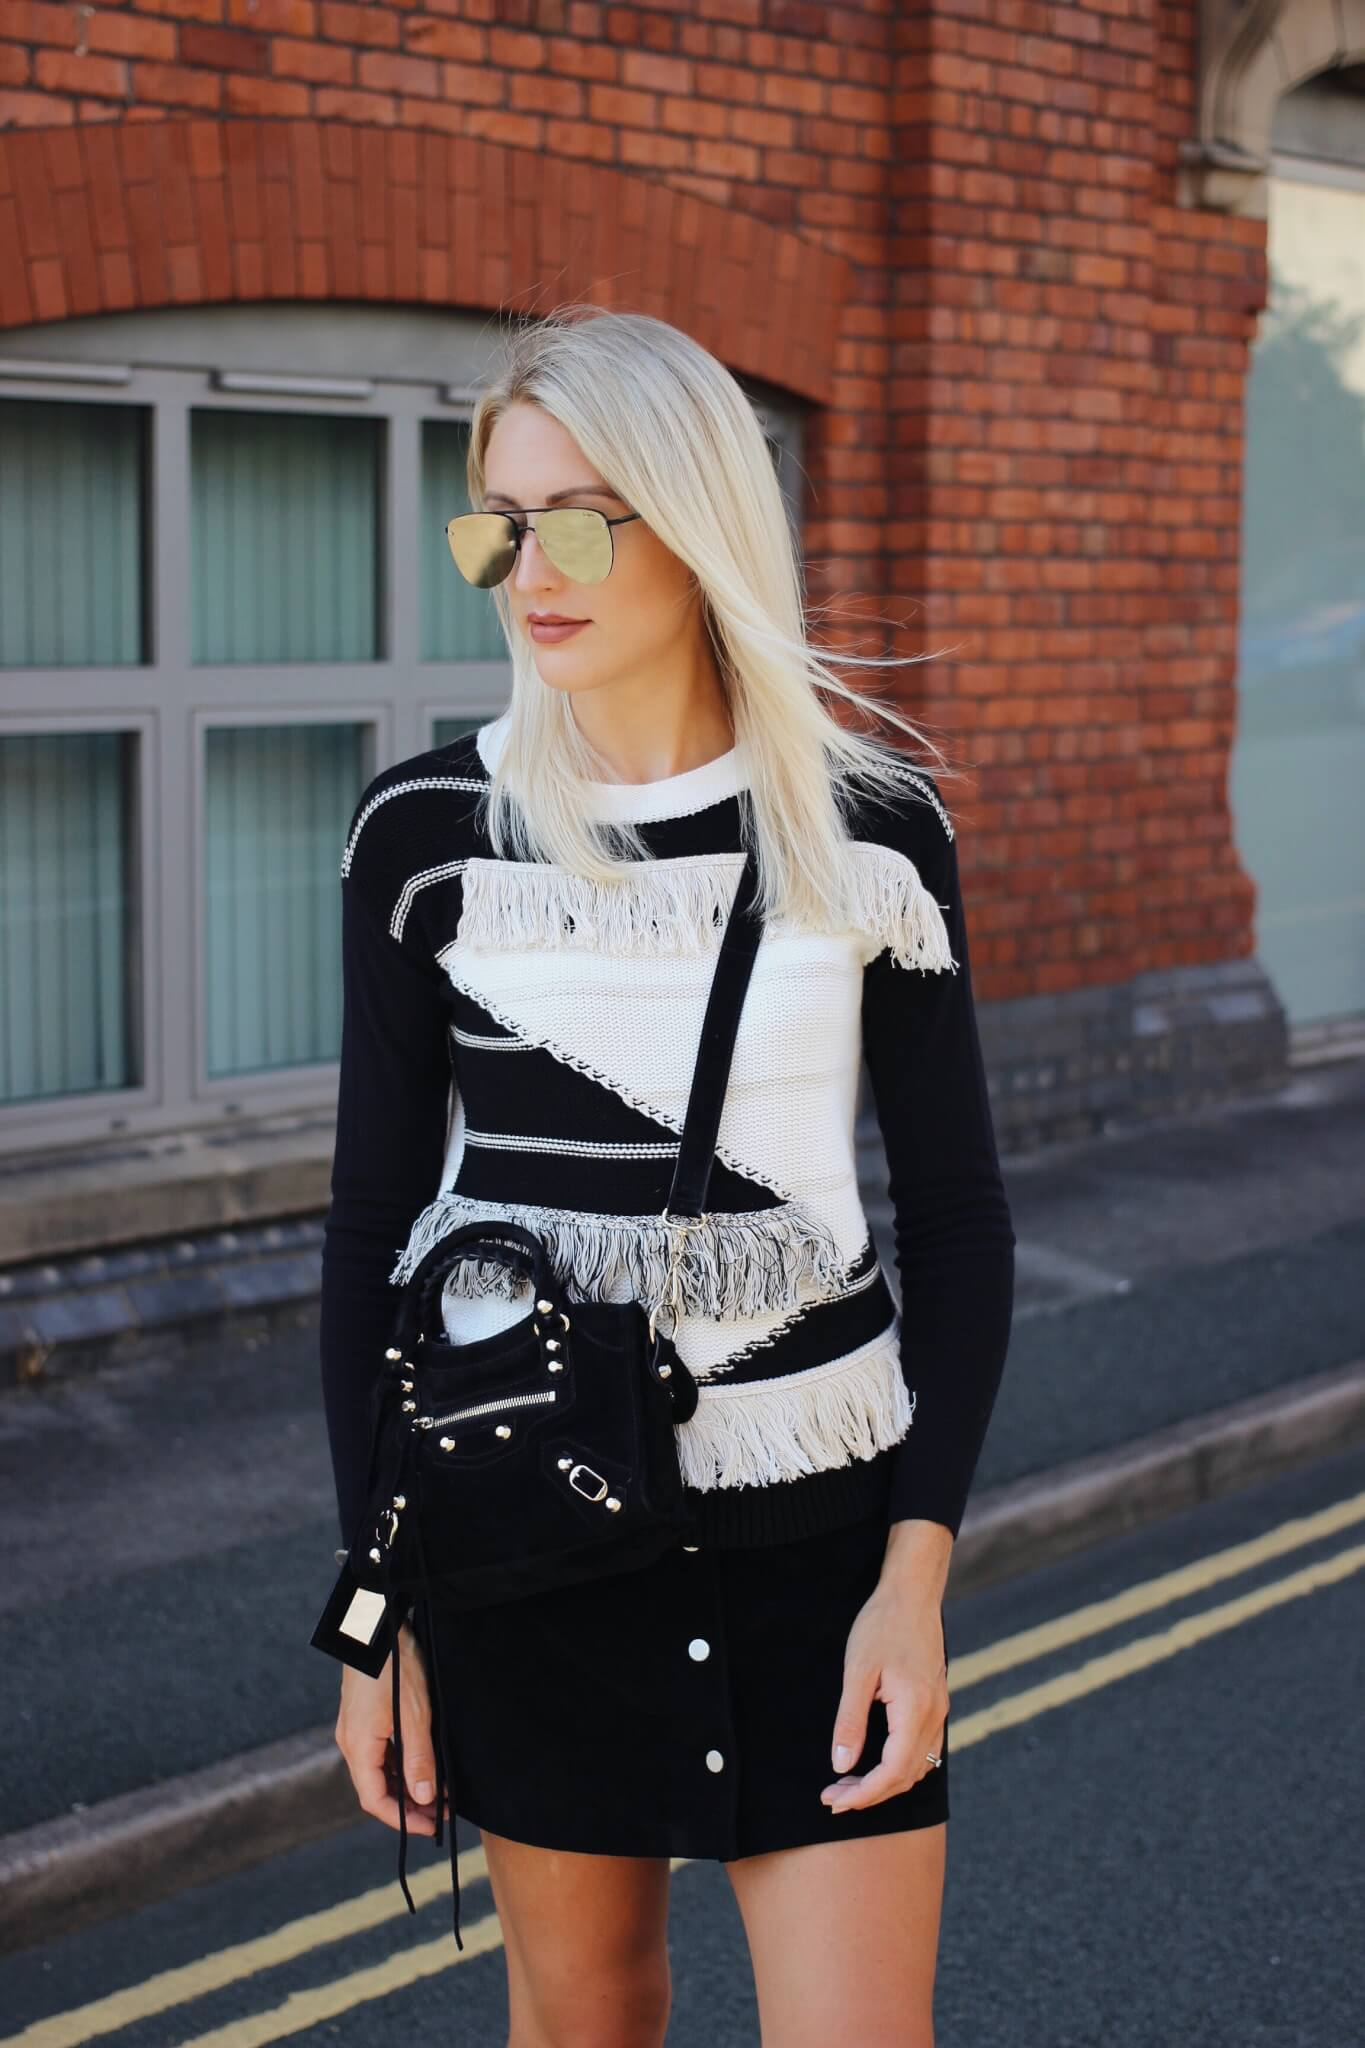 monochrome street style in fringed jumper on fashion blogger